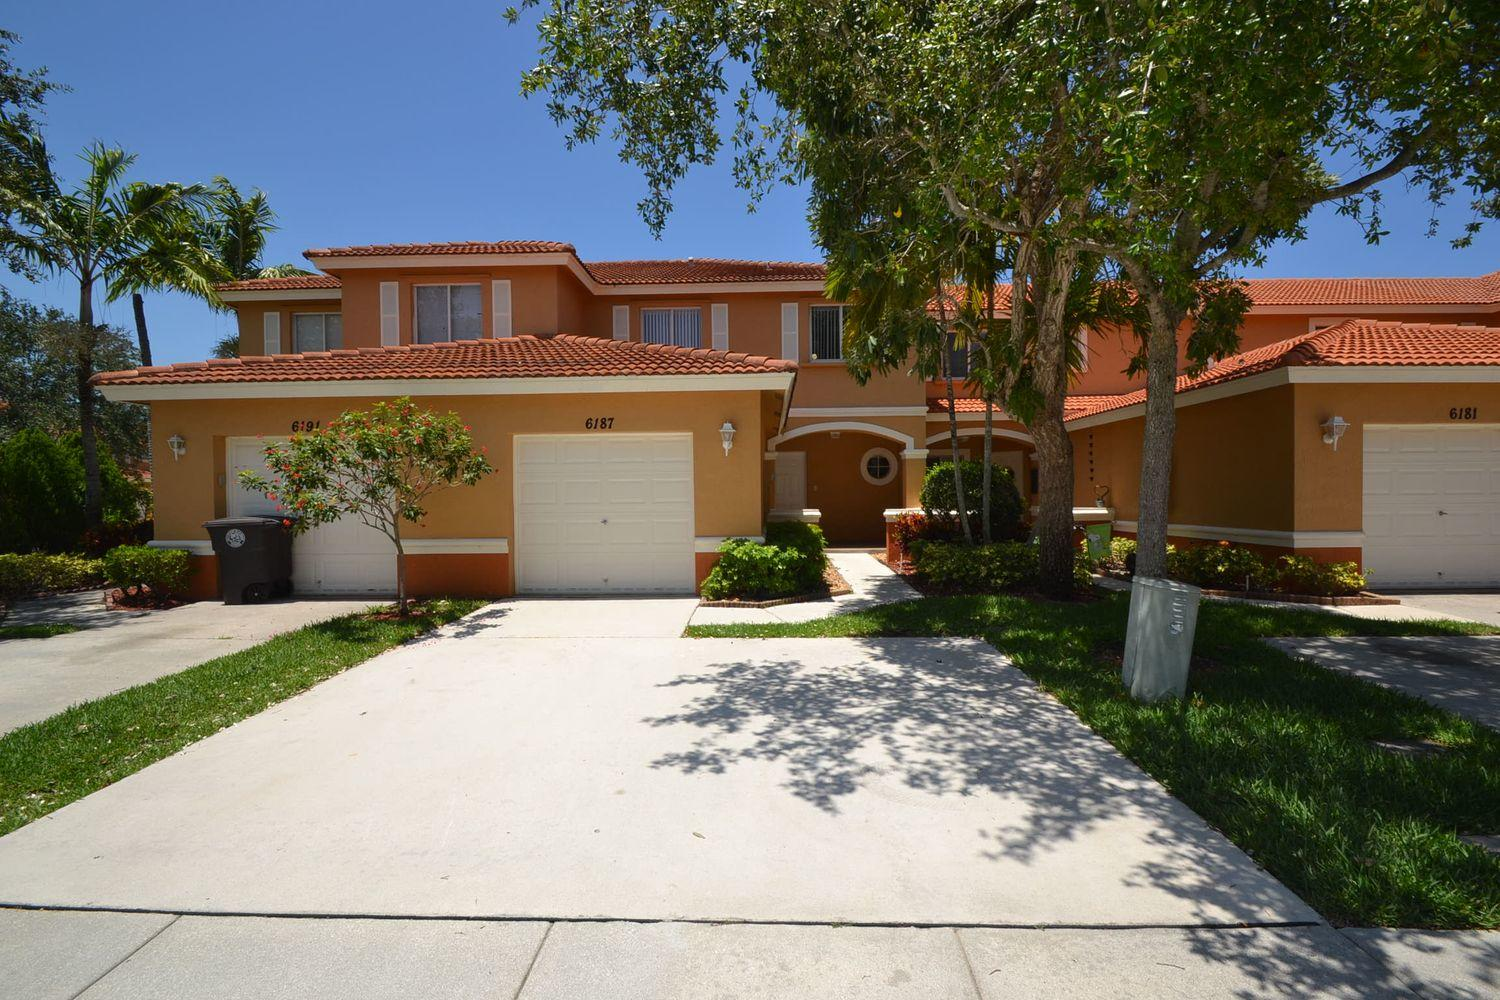 6187 United St, West Palm Beach, FL 33411 For Rent   Trulia